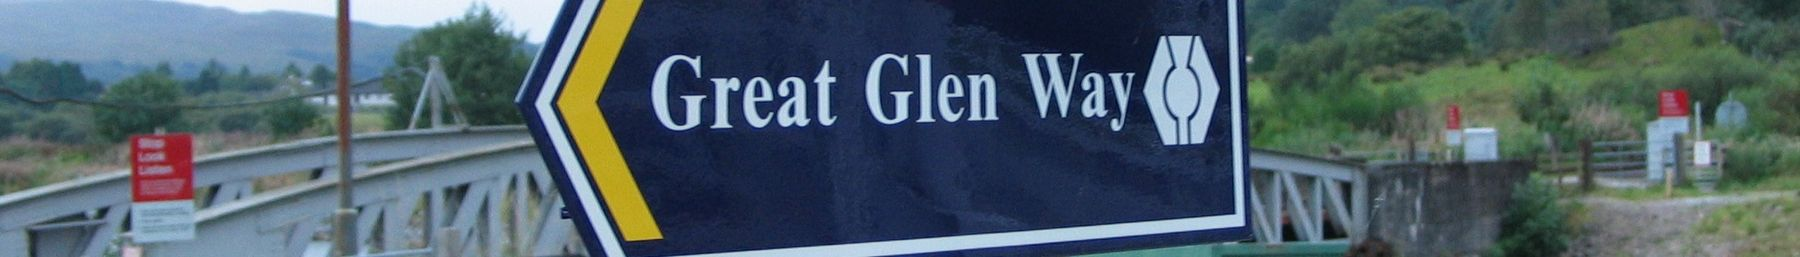 Great Glen Way banner Signposts.jpg